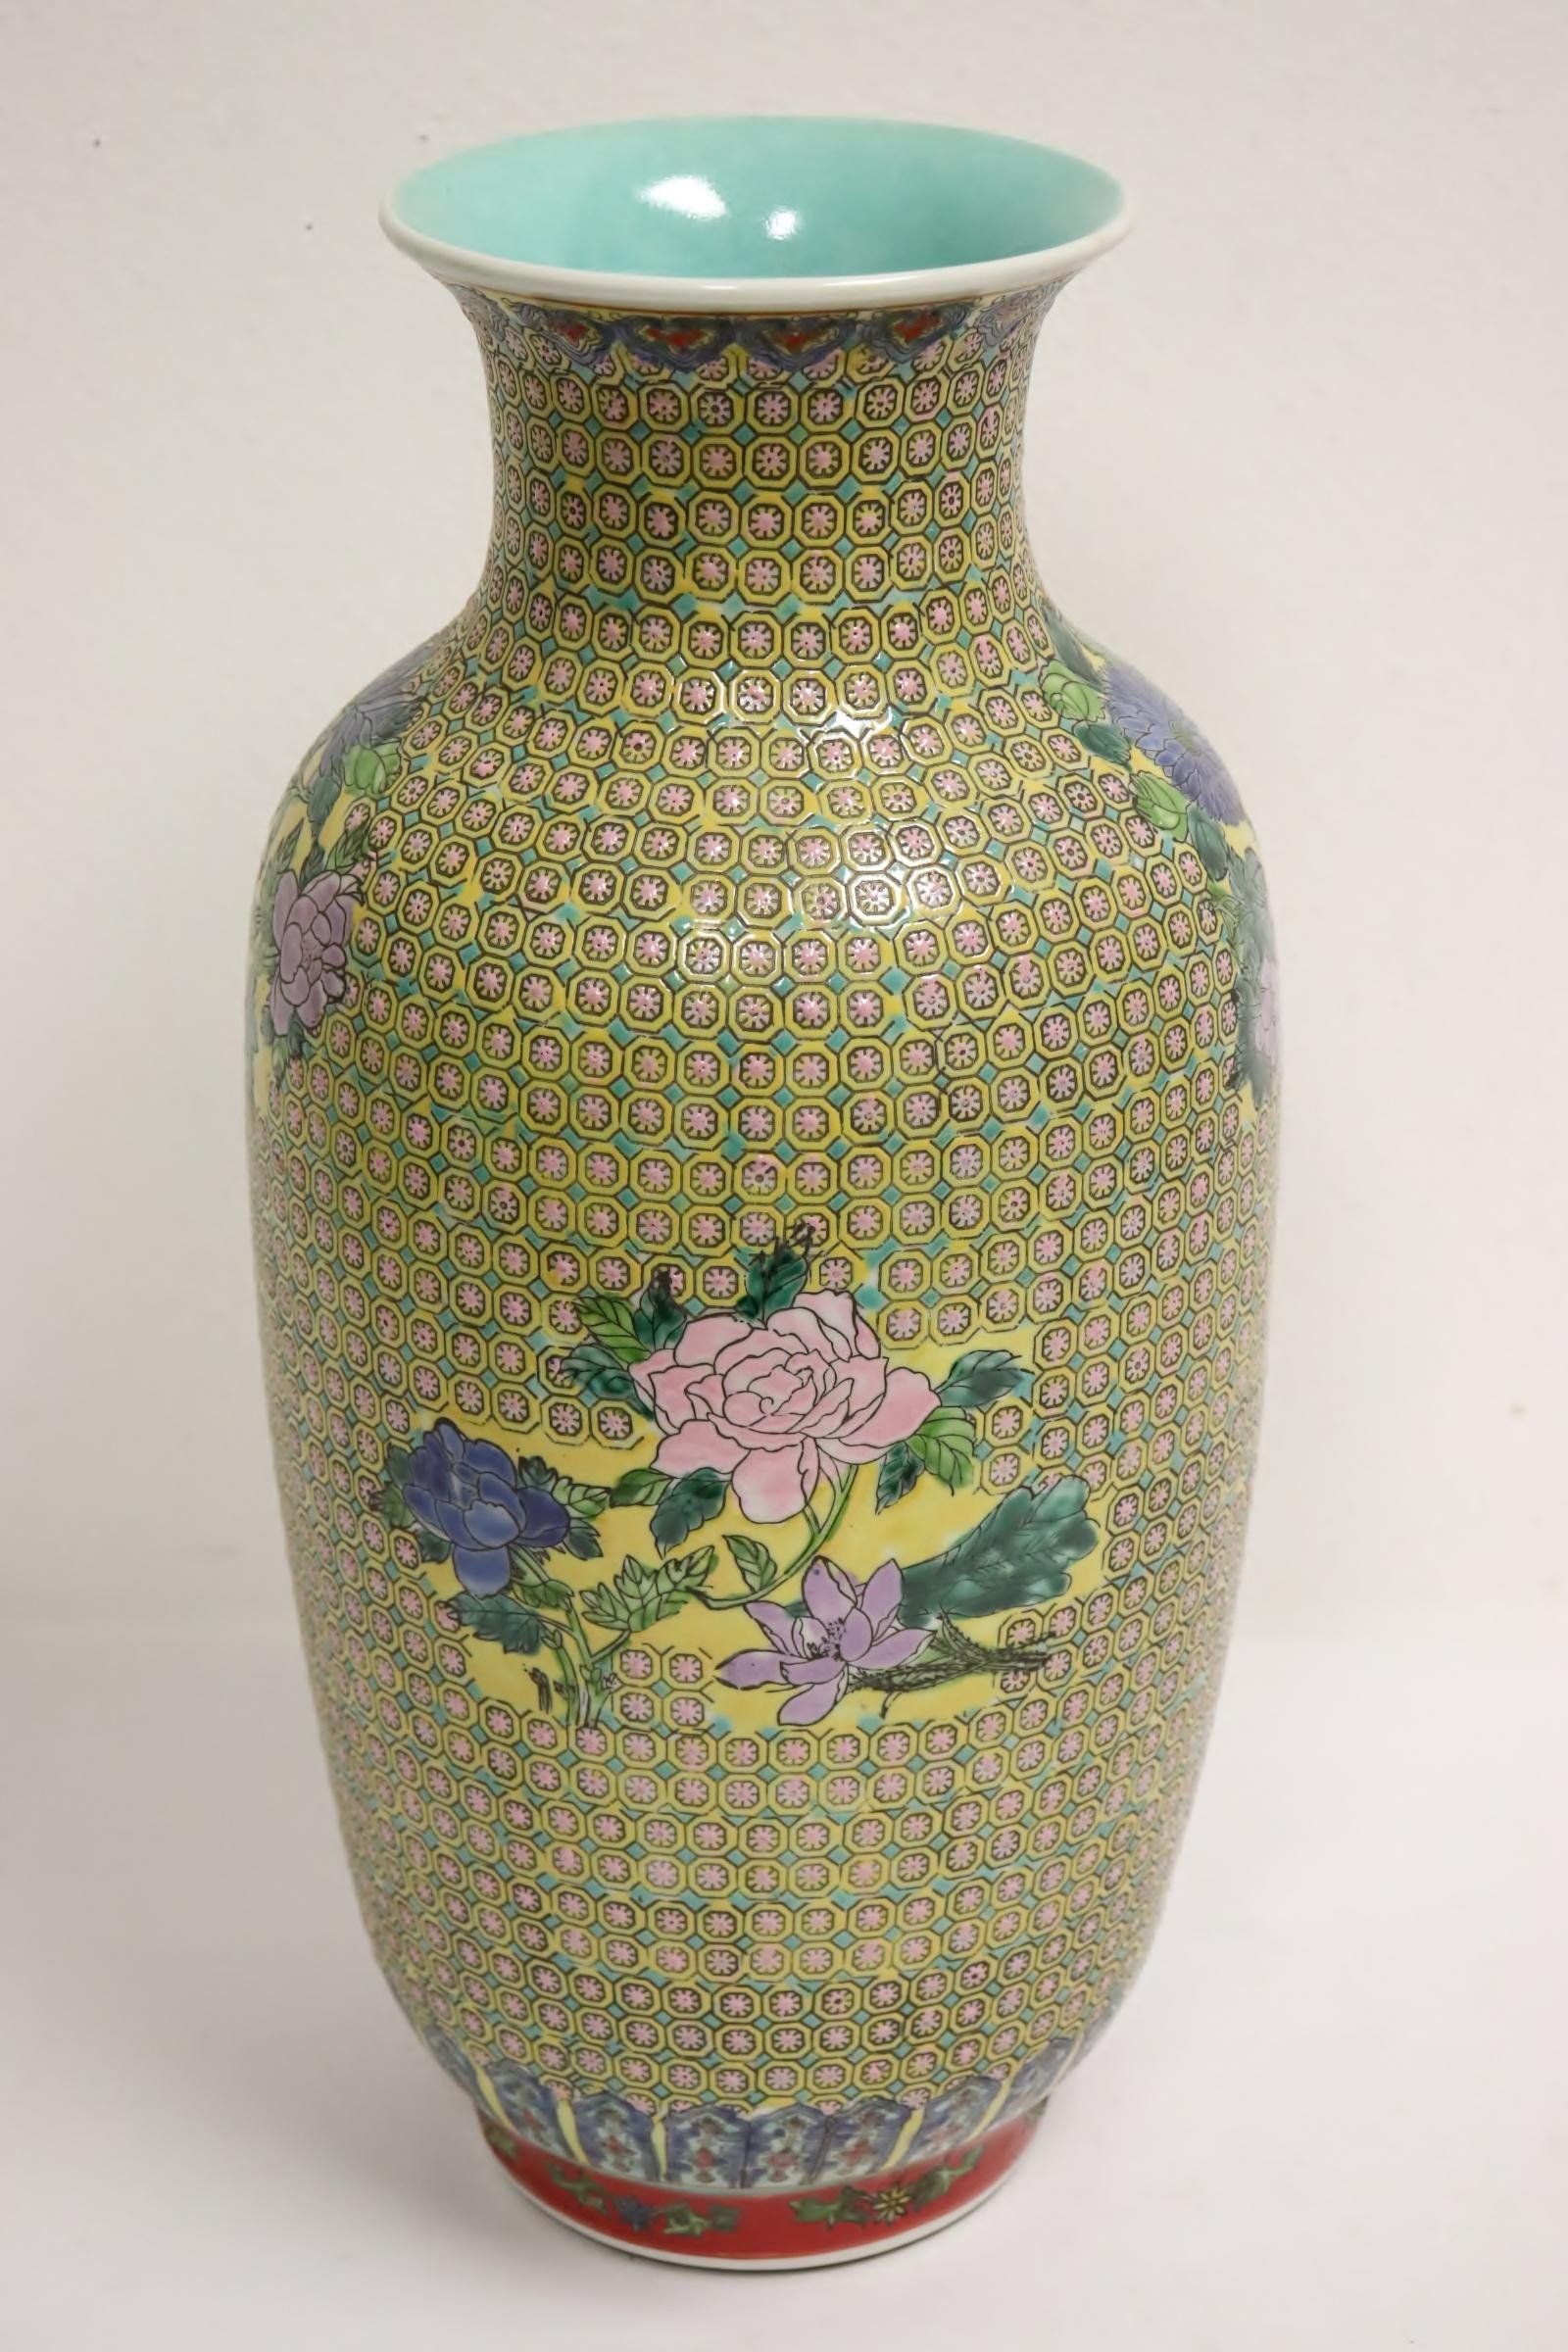 A beautiful Chinese famille rose vase